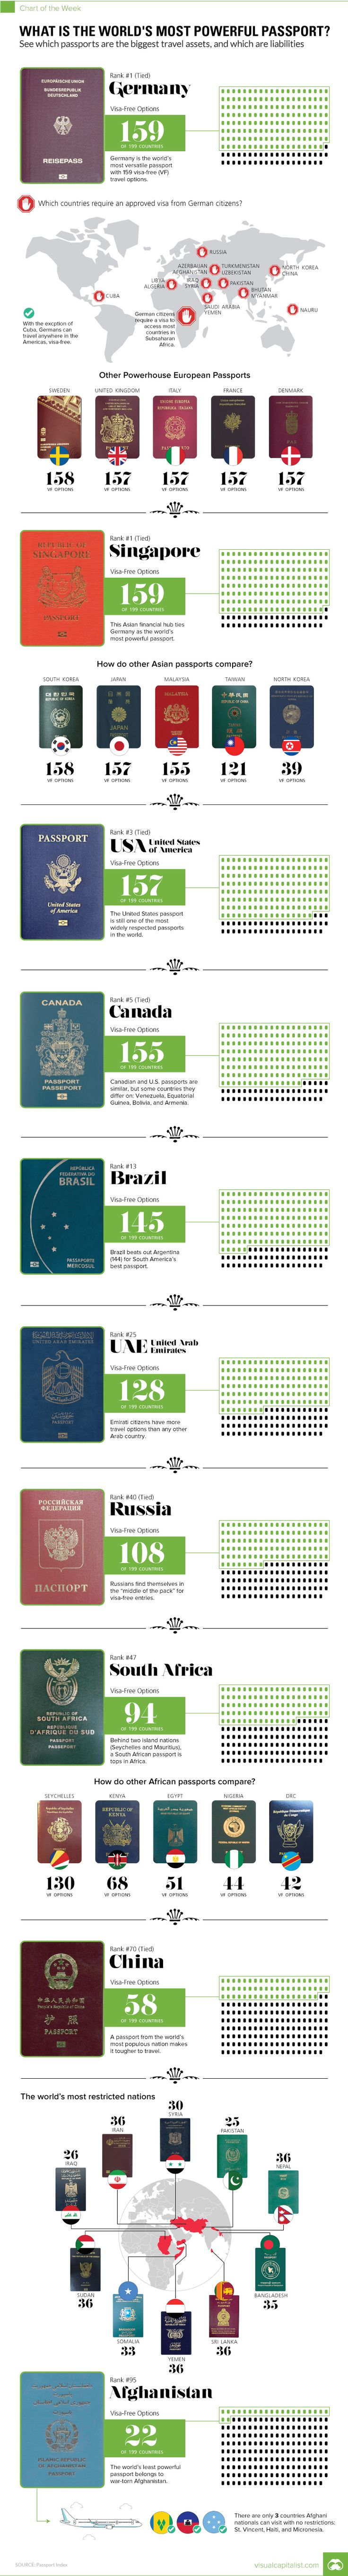 What Is The World's Most Powerful Passport? | Zero Hedge